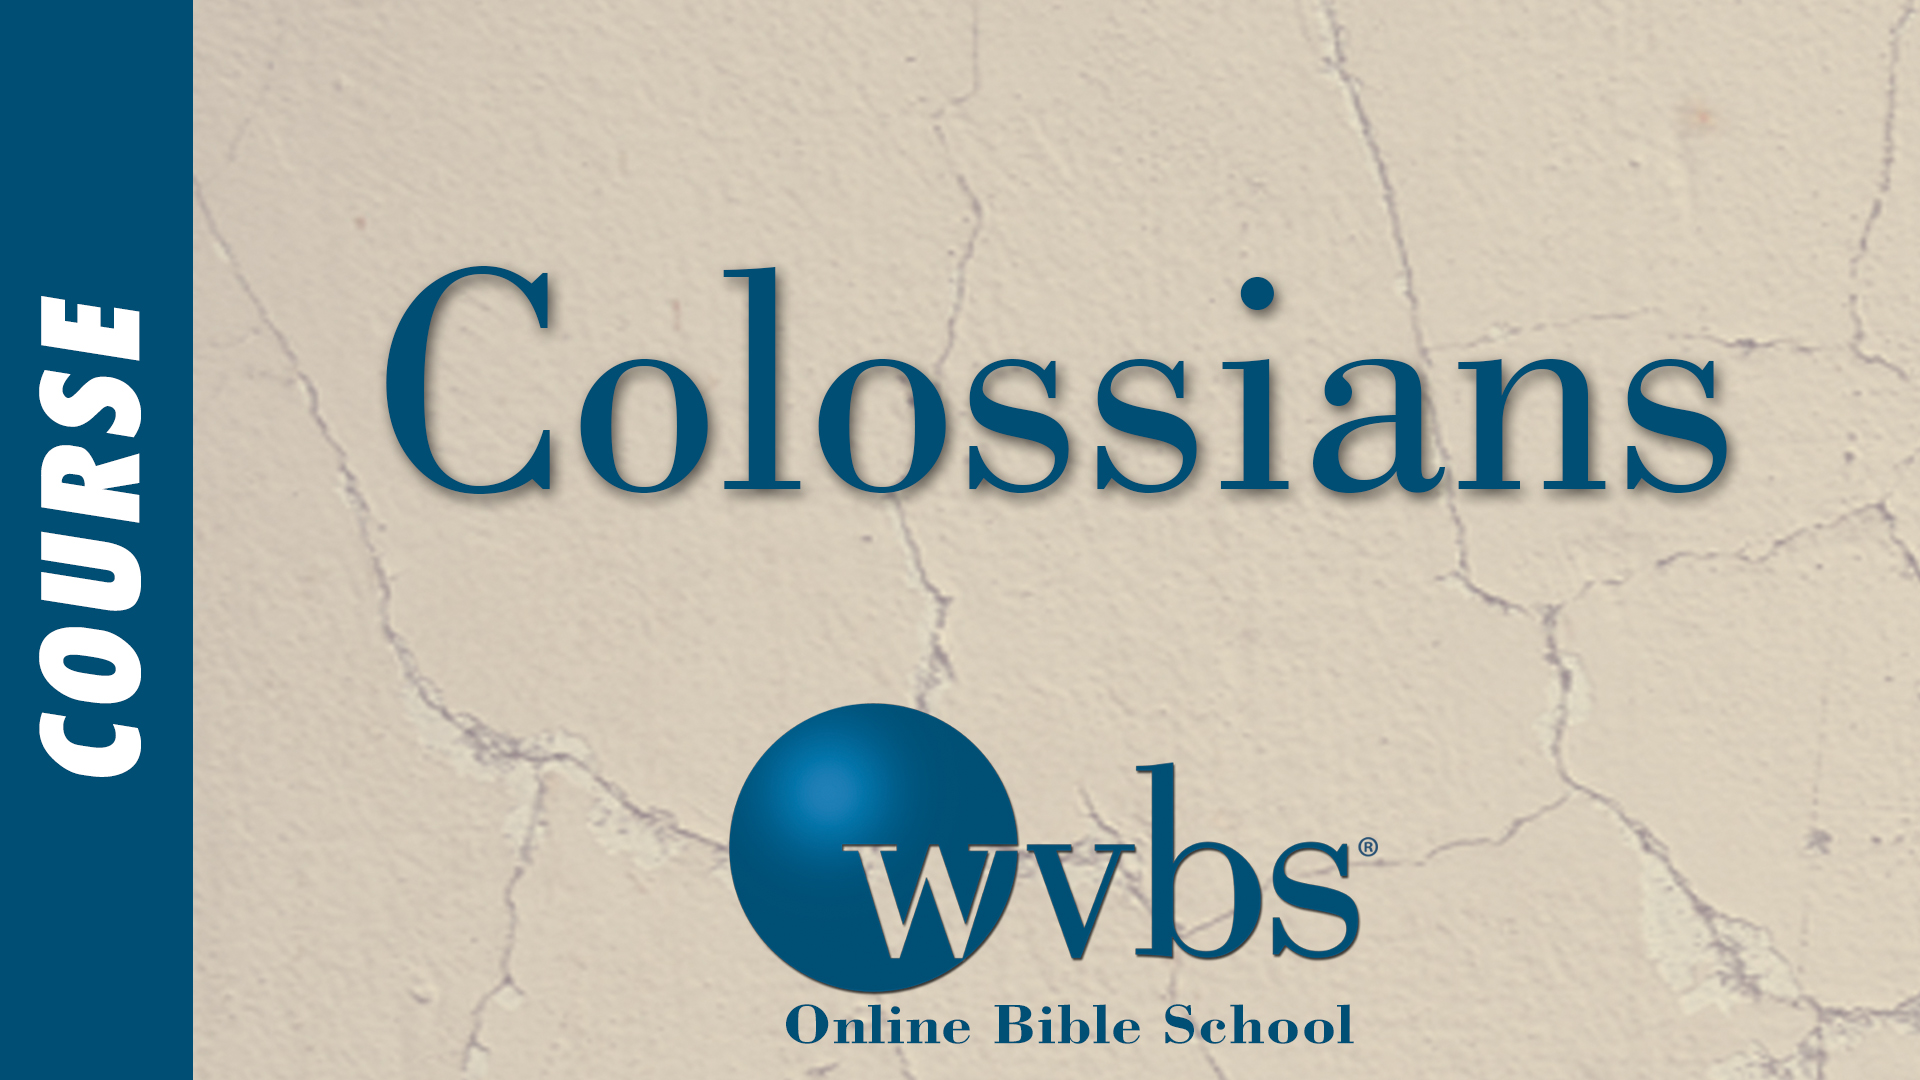 Colossians (Online Bible School)